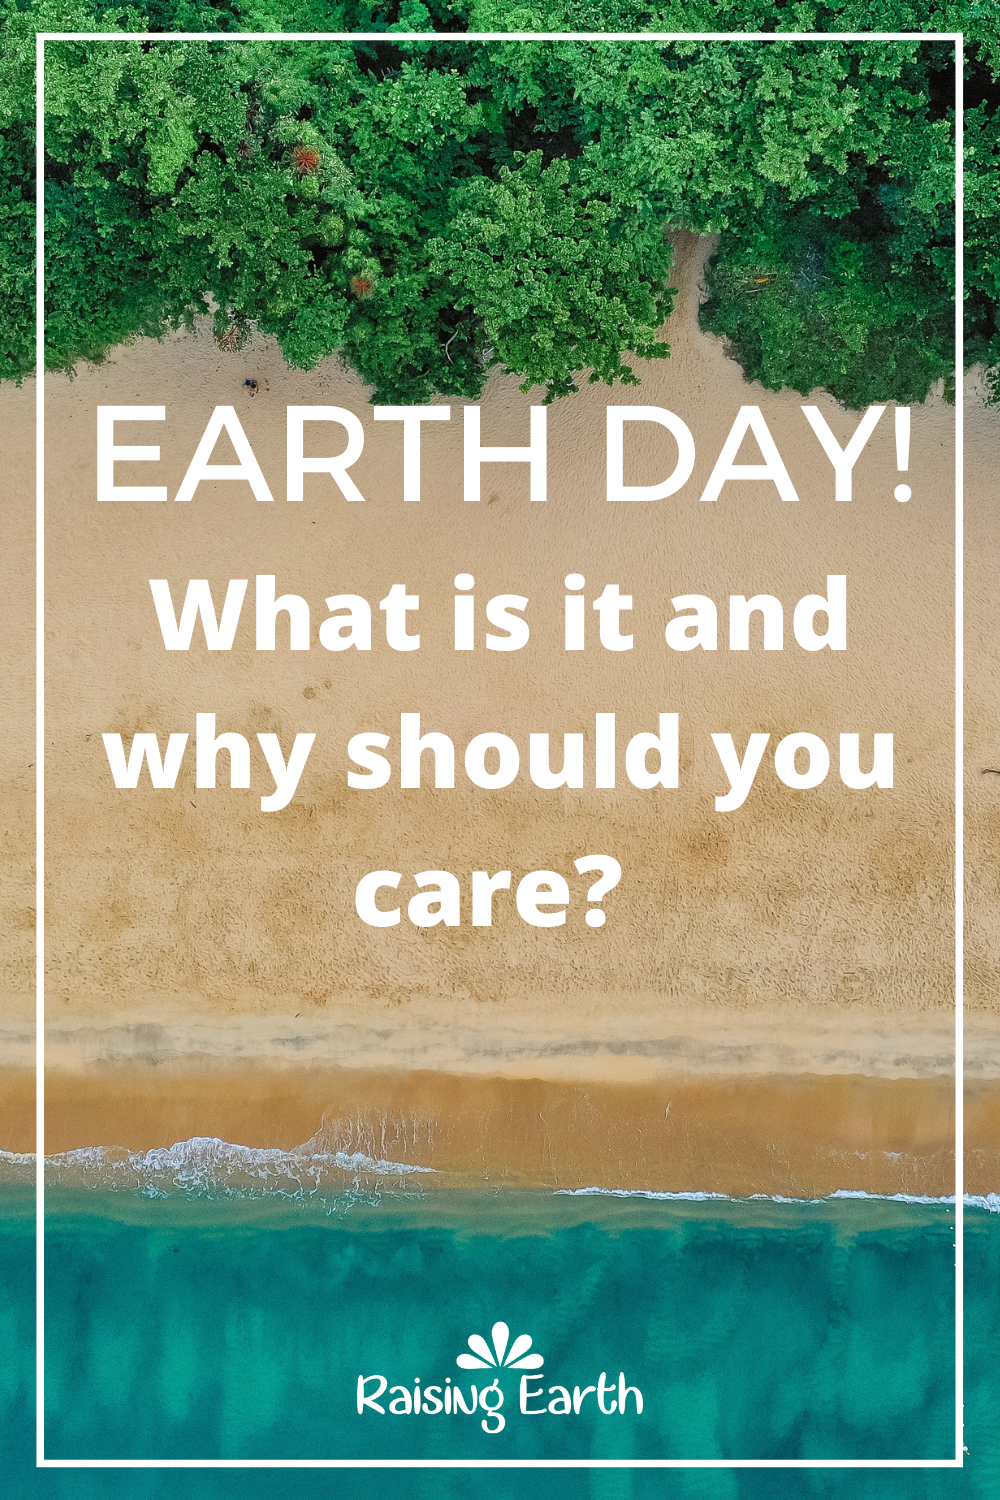 Raising Earth - Earth Day! What is it and why should you care?